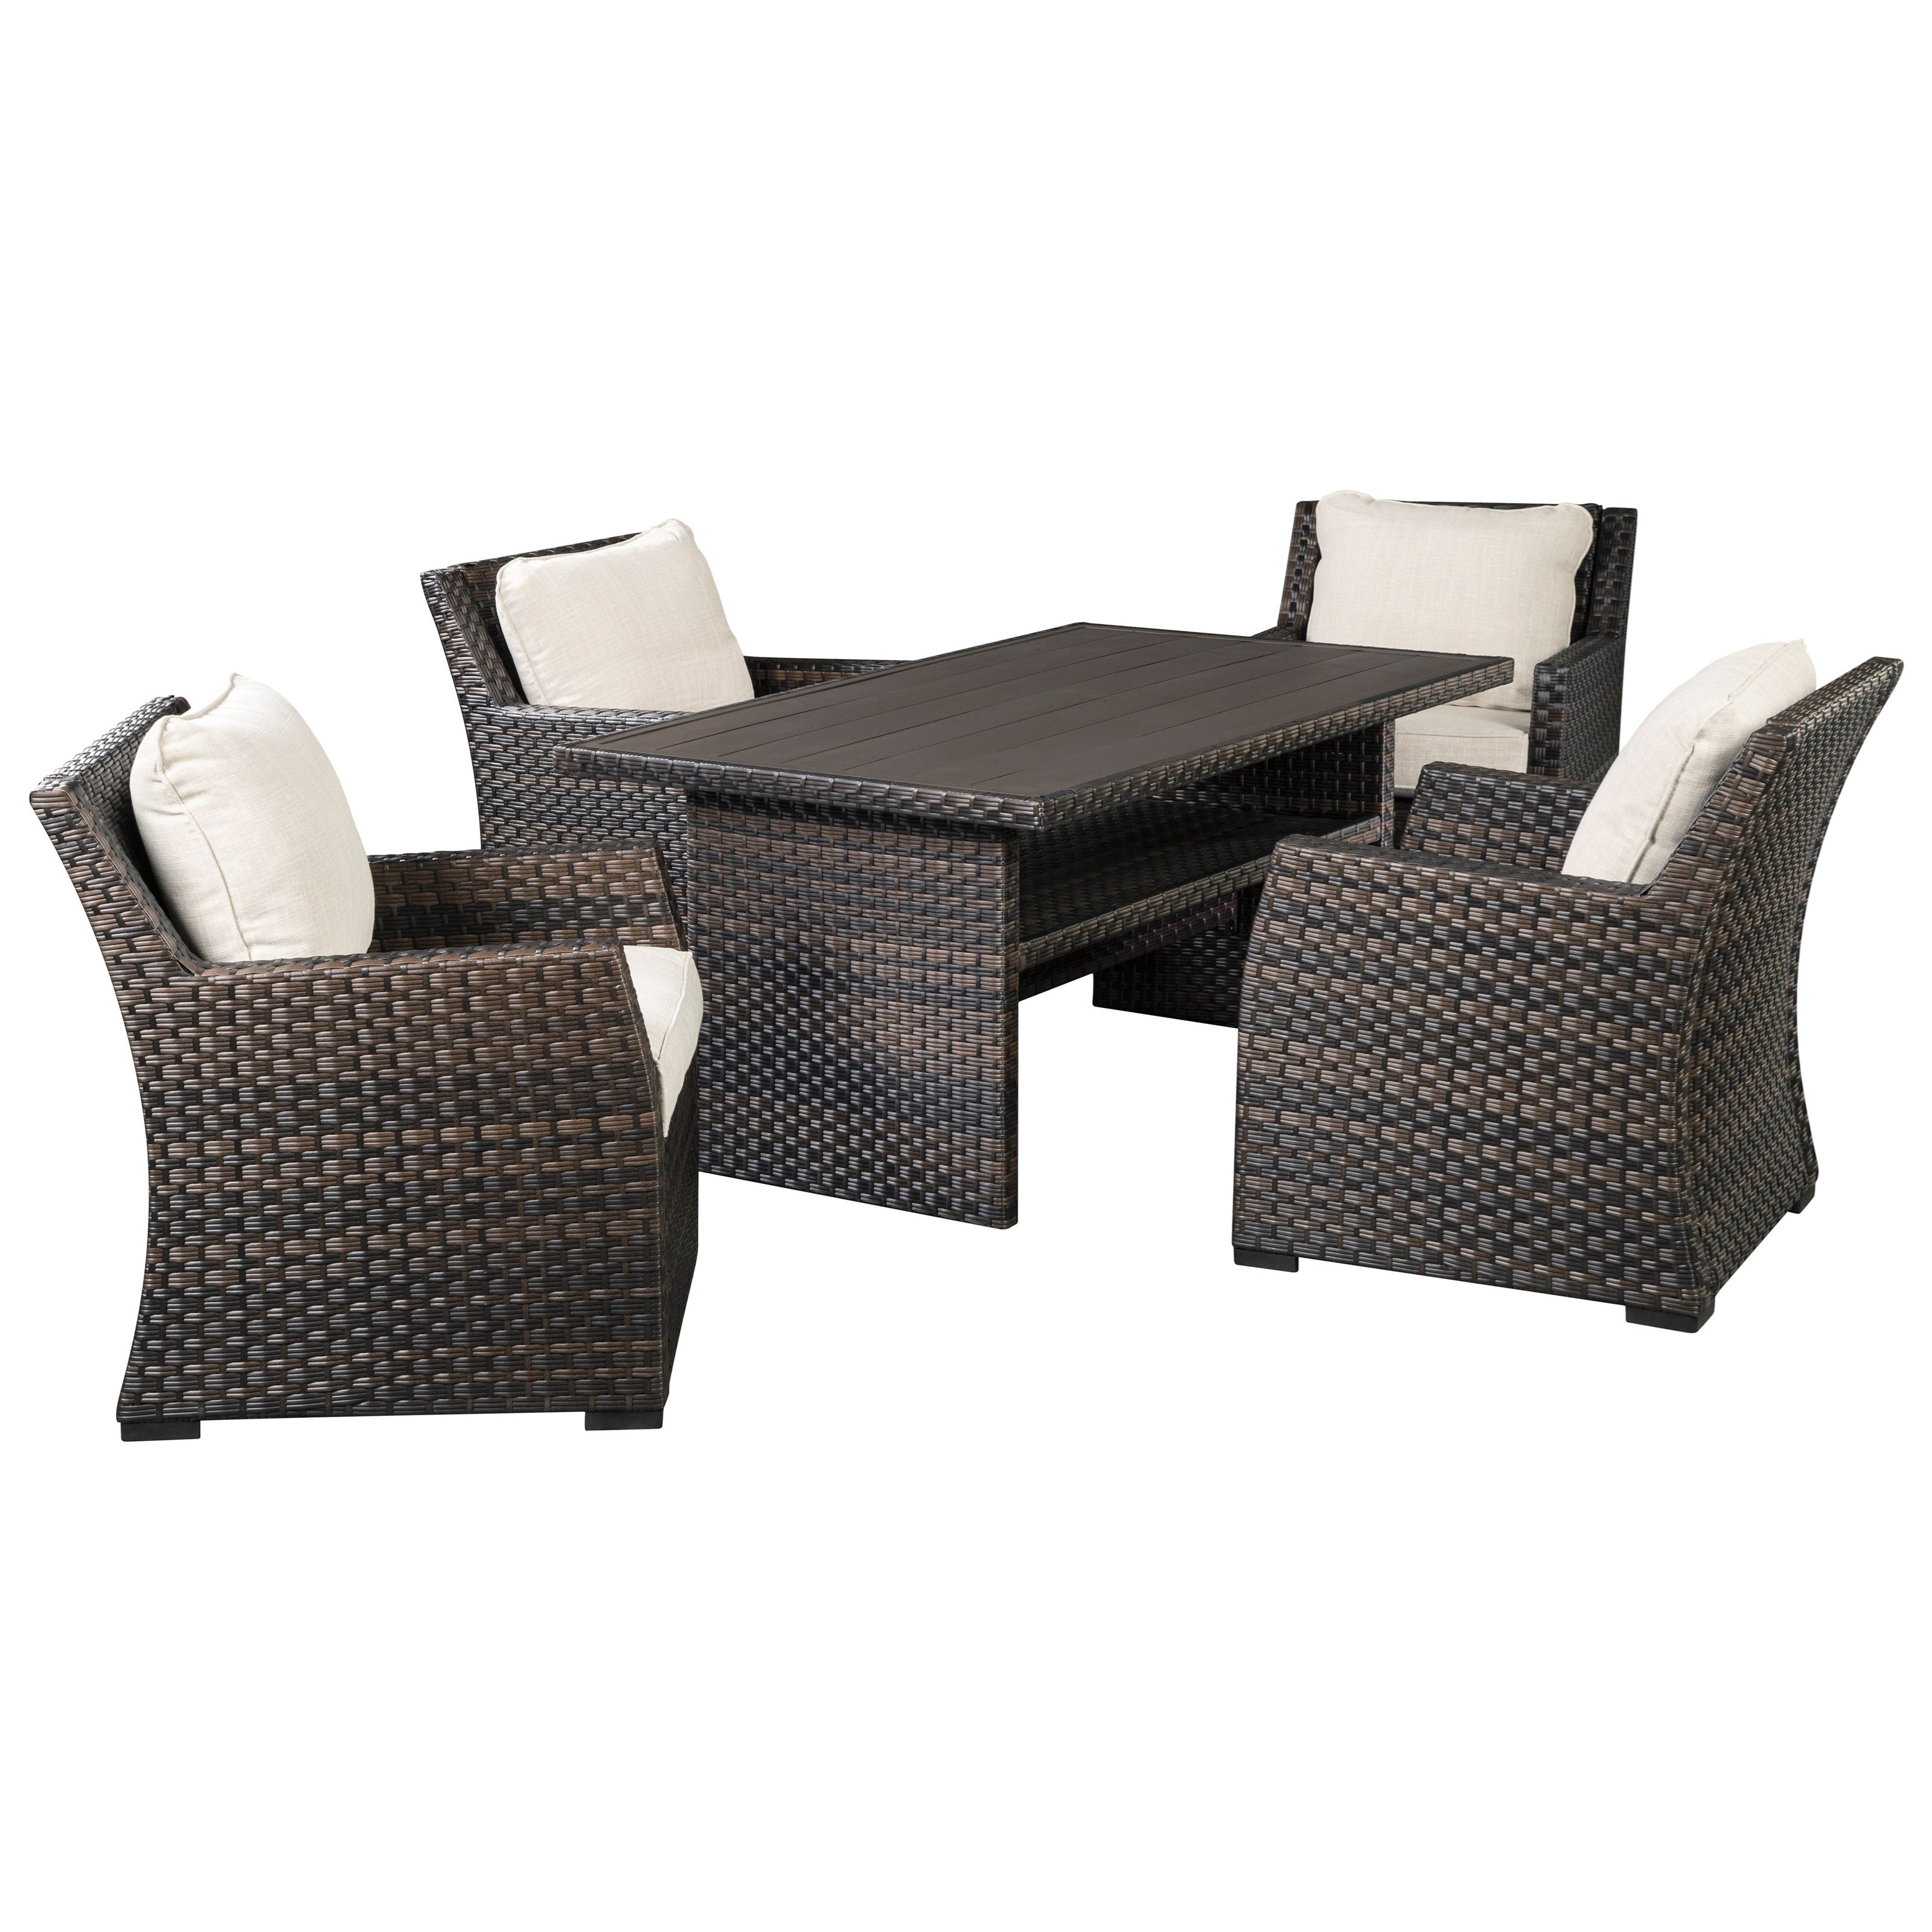 Sandpiper Multi-Use Table & 4 Lounge Chairs at Belfort Furniture